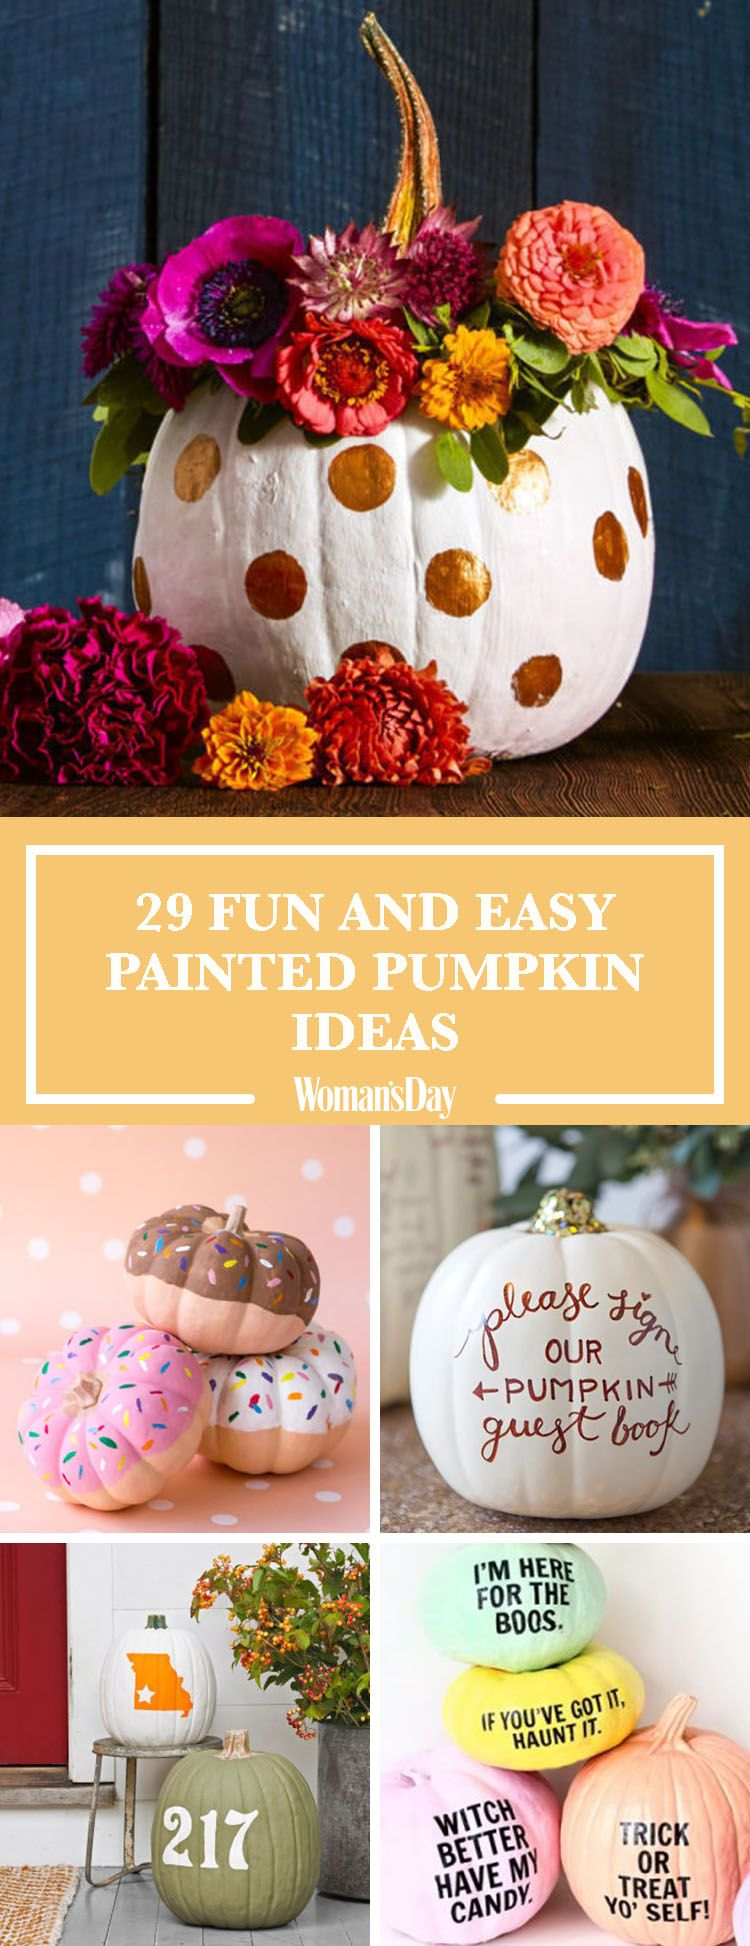 fun painted pumpkin ideas for the bestever halloween pumpkin